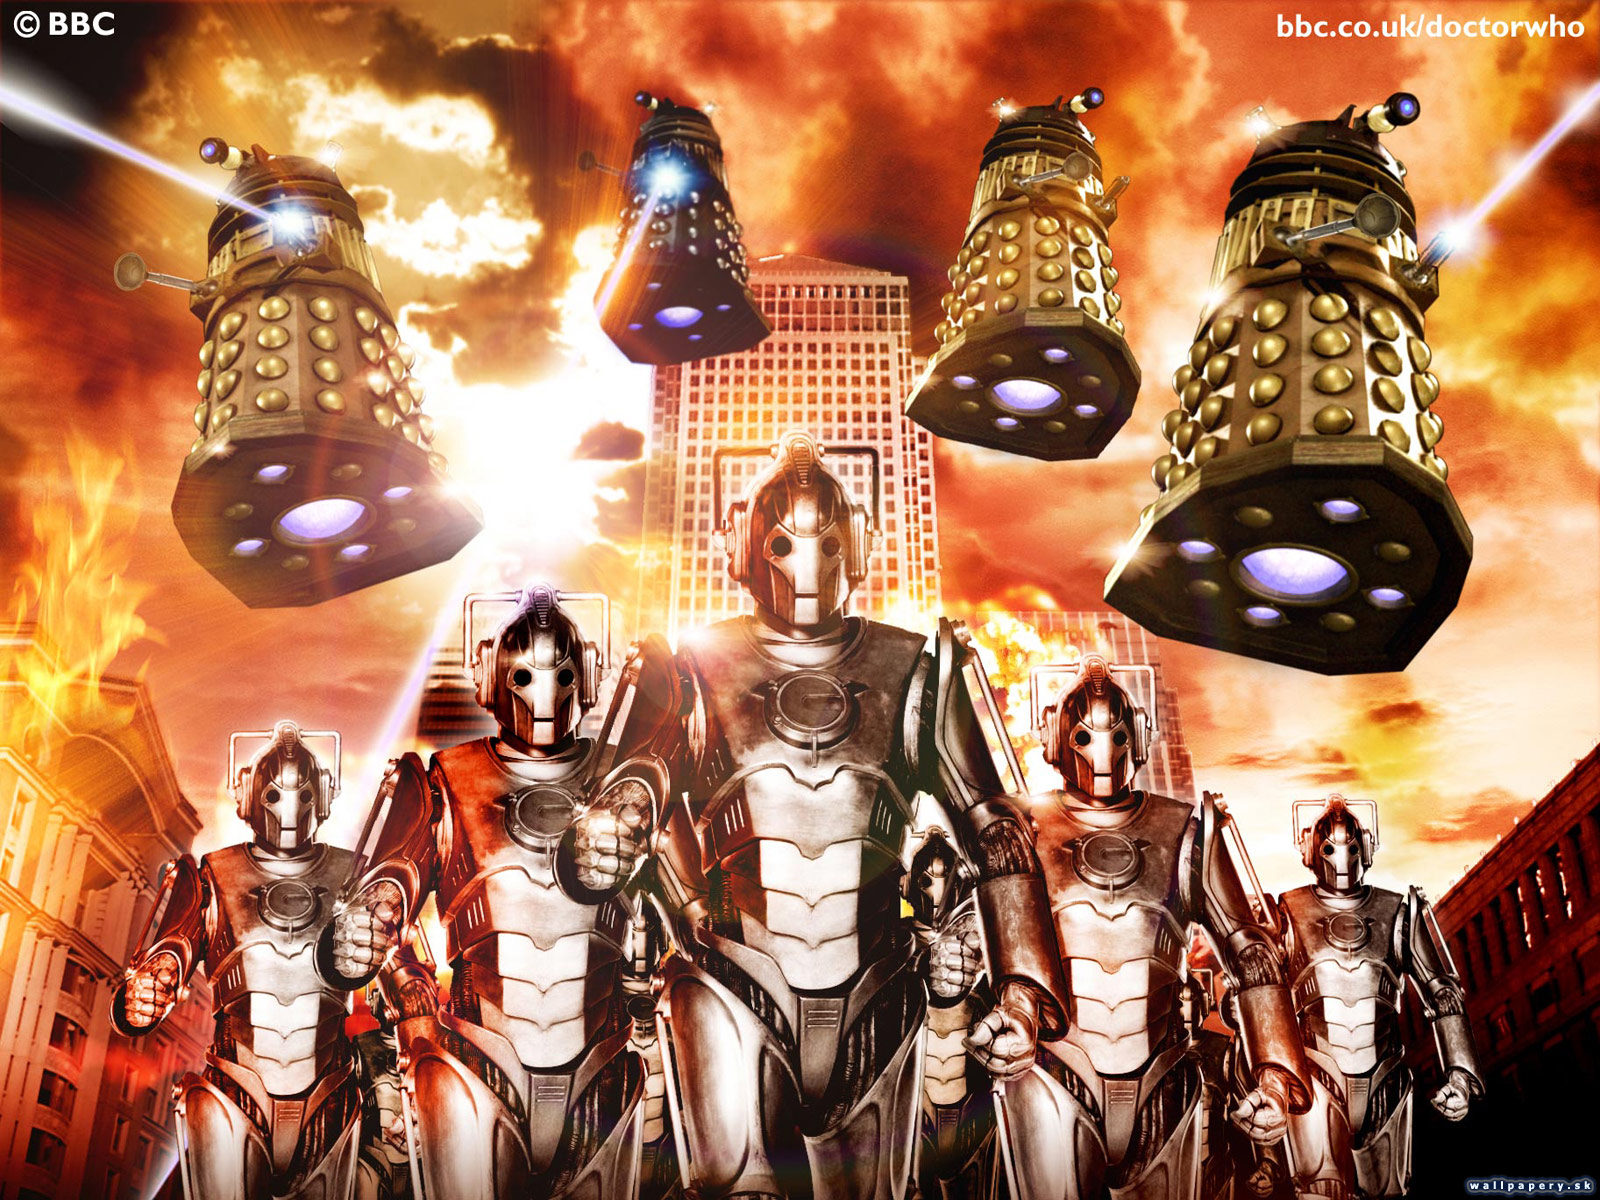 Doctor Who: The Adventure Games - City of the Daleks - wallpaper 6